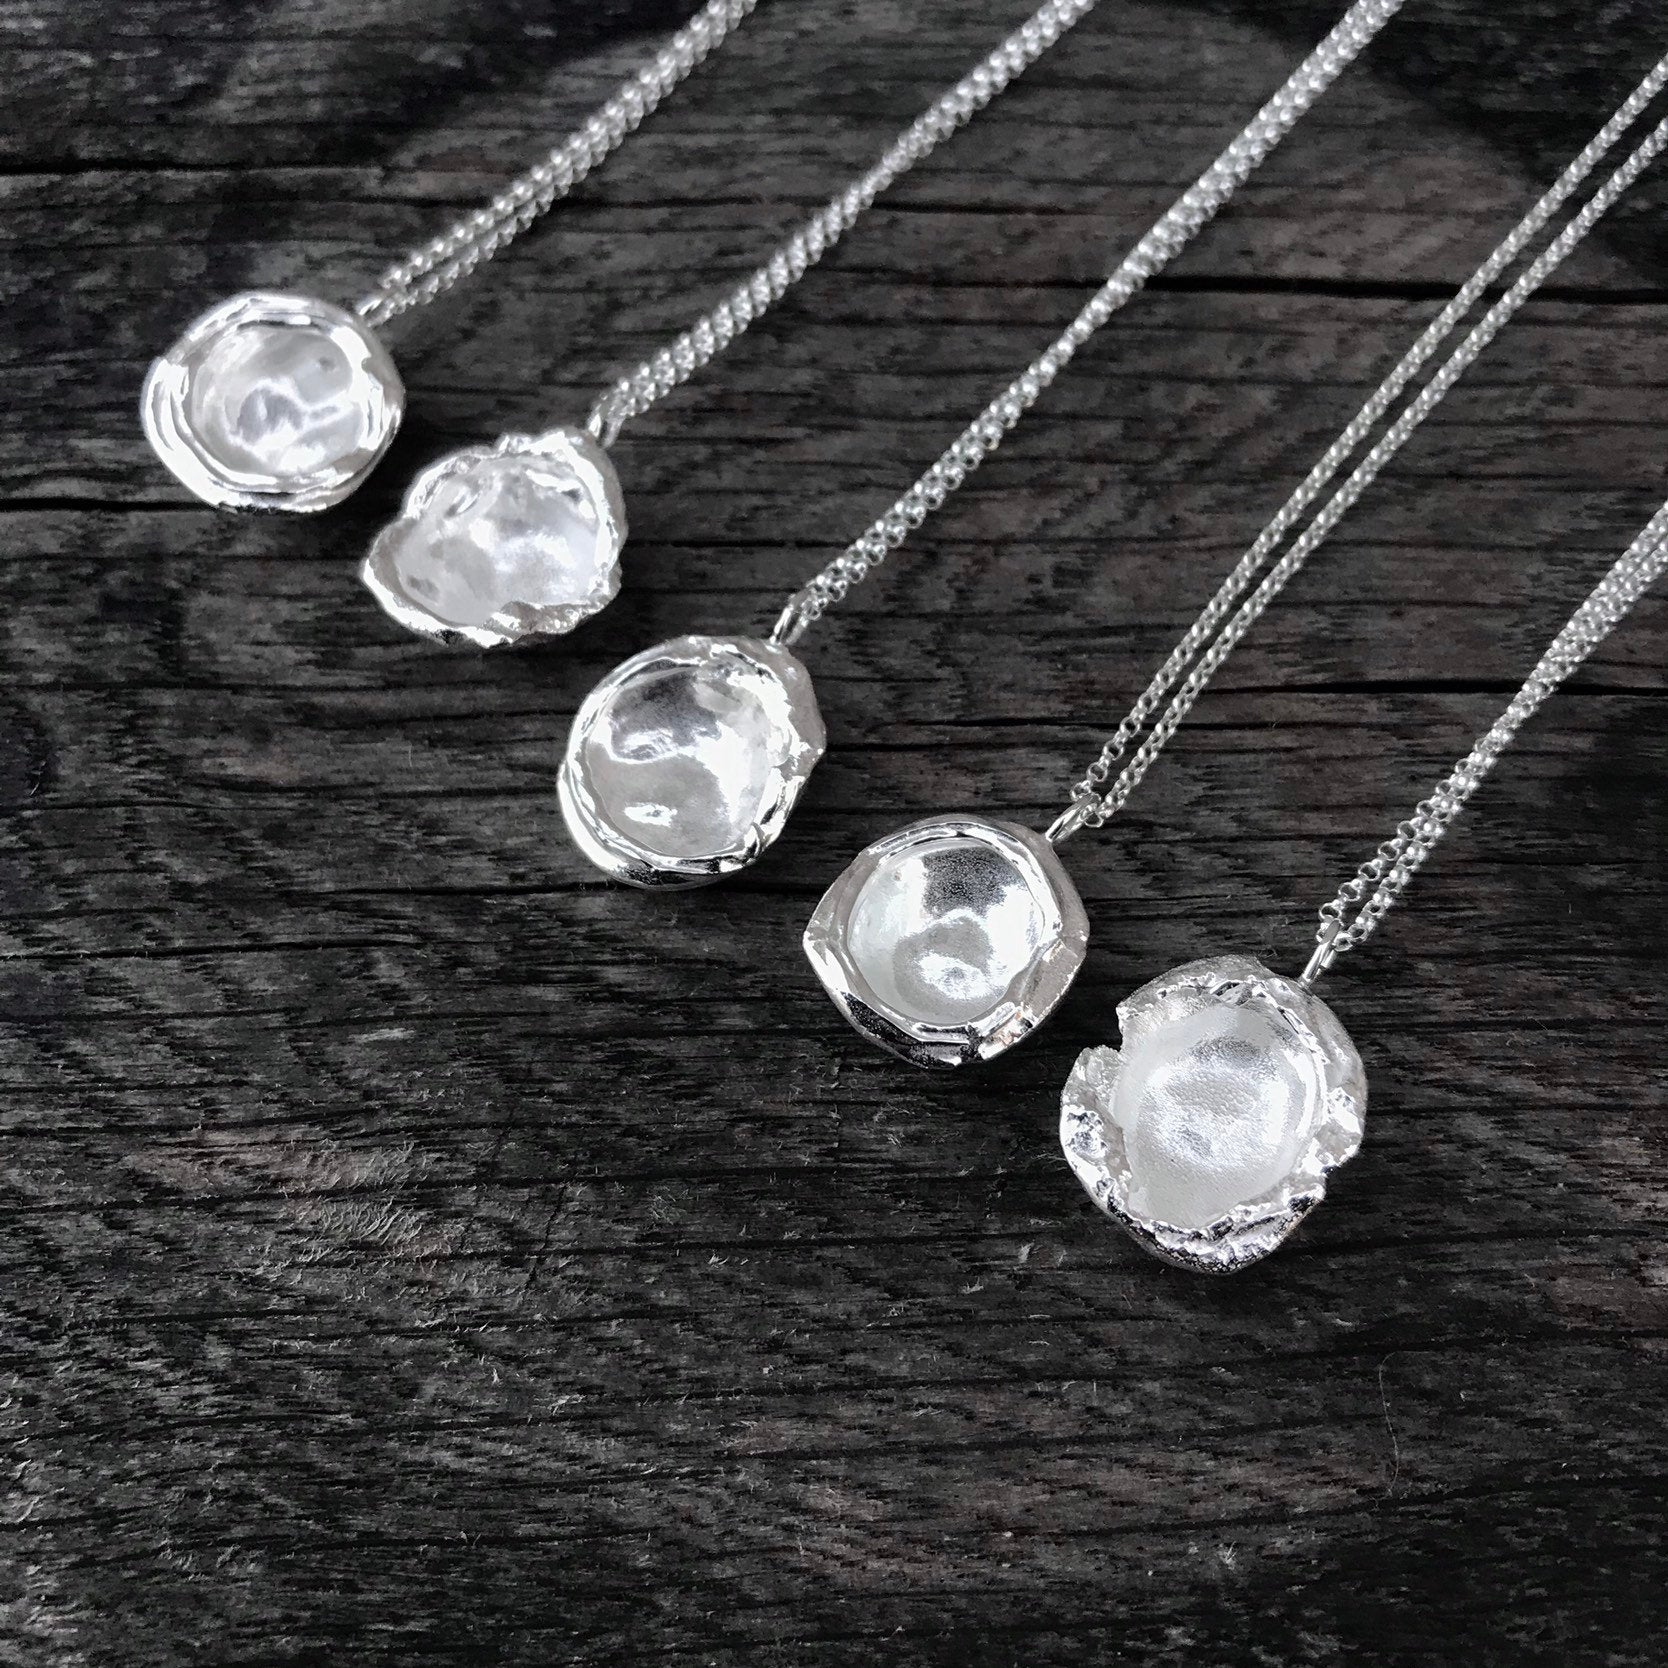 Silver Droplet Necklace, Sterling Silver Pendant Necklace, Recycled Silver,  Organic Water Droplet Necklace, Teardrop Contemporary Necklace Pertaining To Recent August Droplet Pendant Necklaces (Gallery 11 of 25)